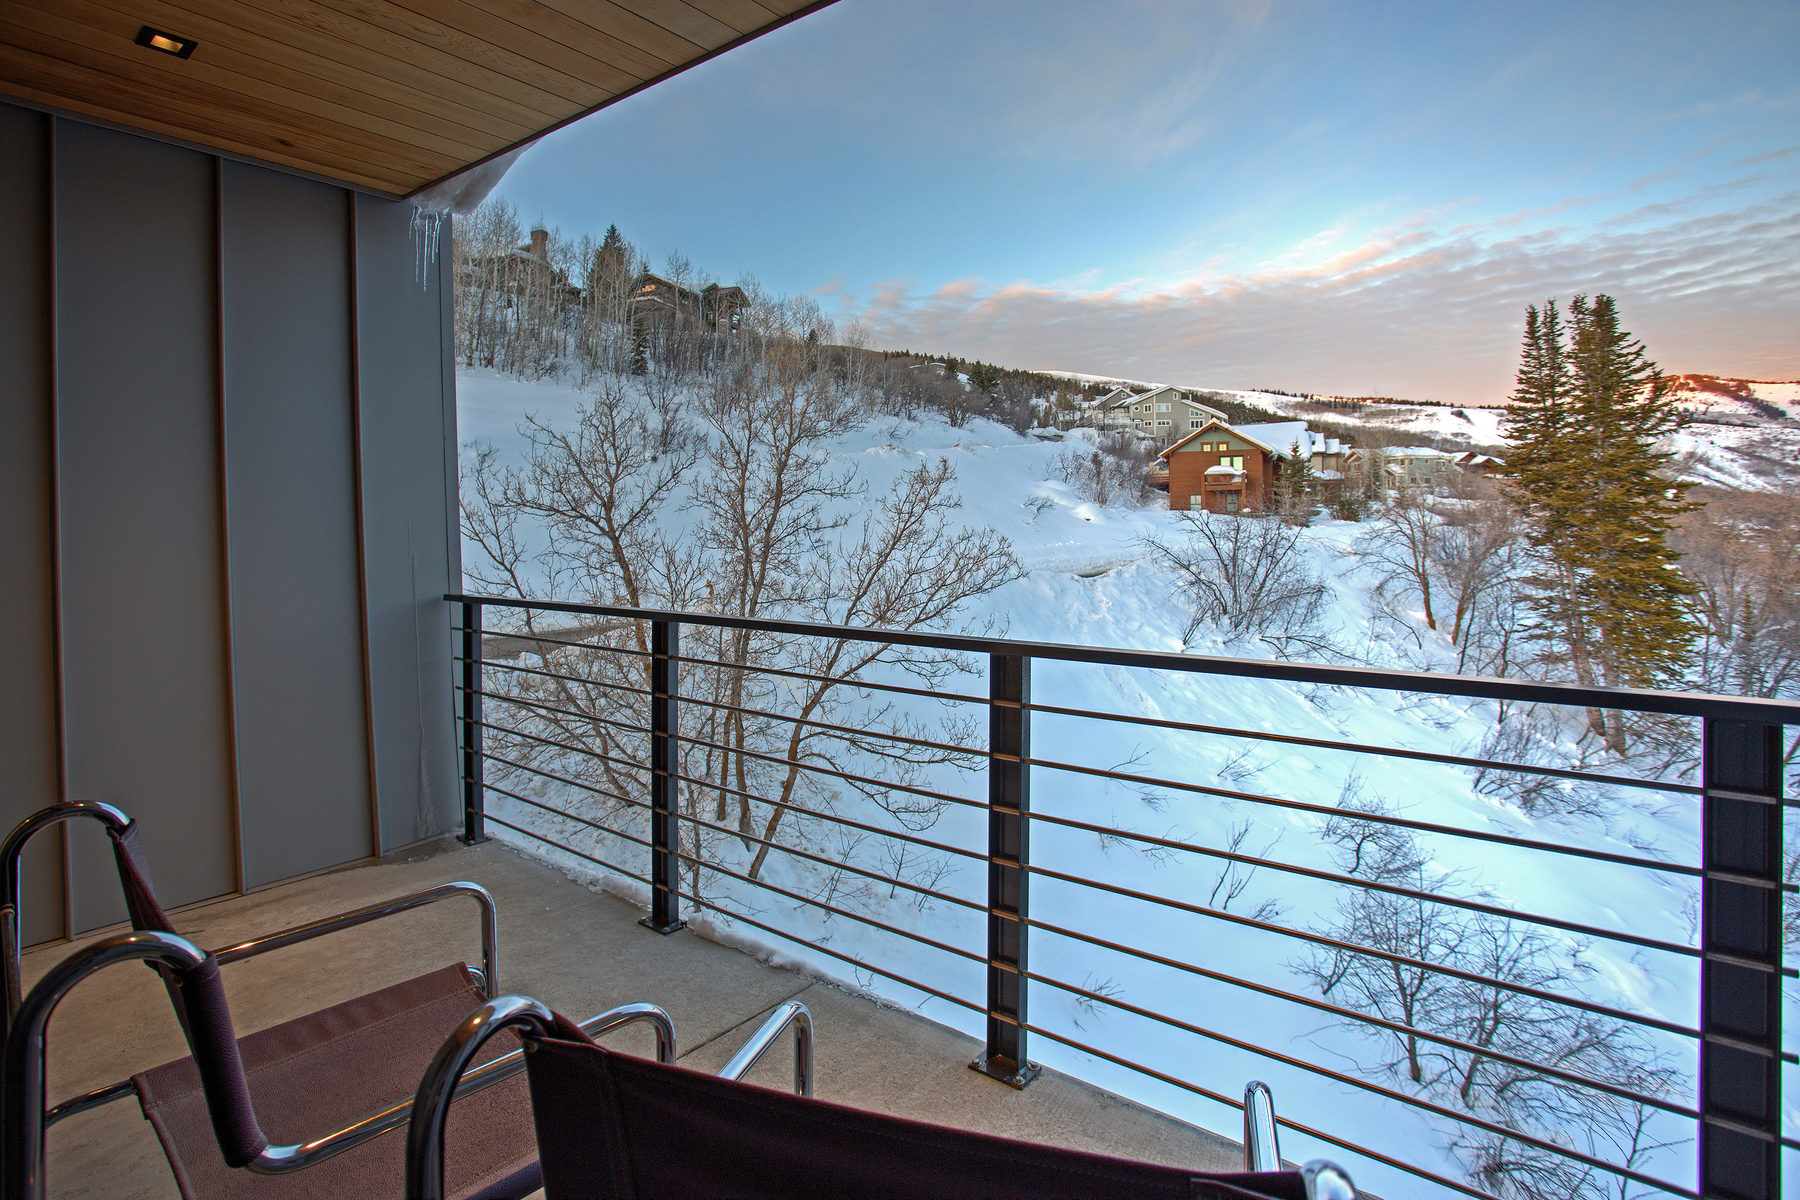 Additional photo for property listing at That (Modern) House on Rossie Hill 575 Rossie Hill Dr # 11 Park City, Utah 84060 United States